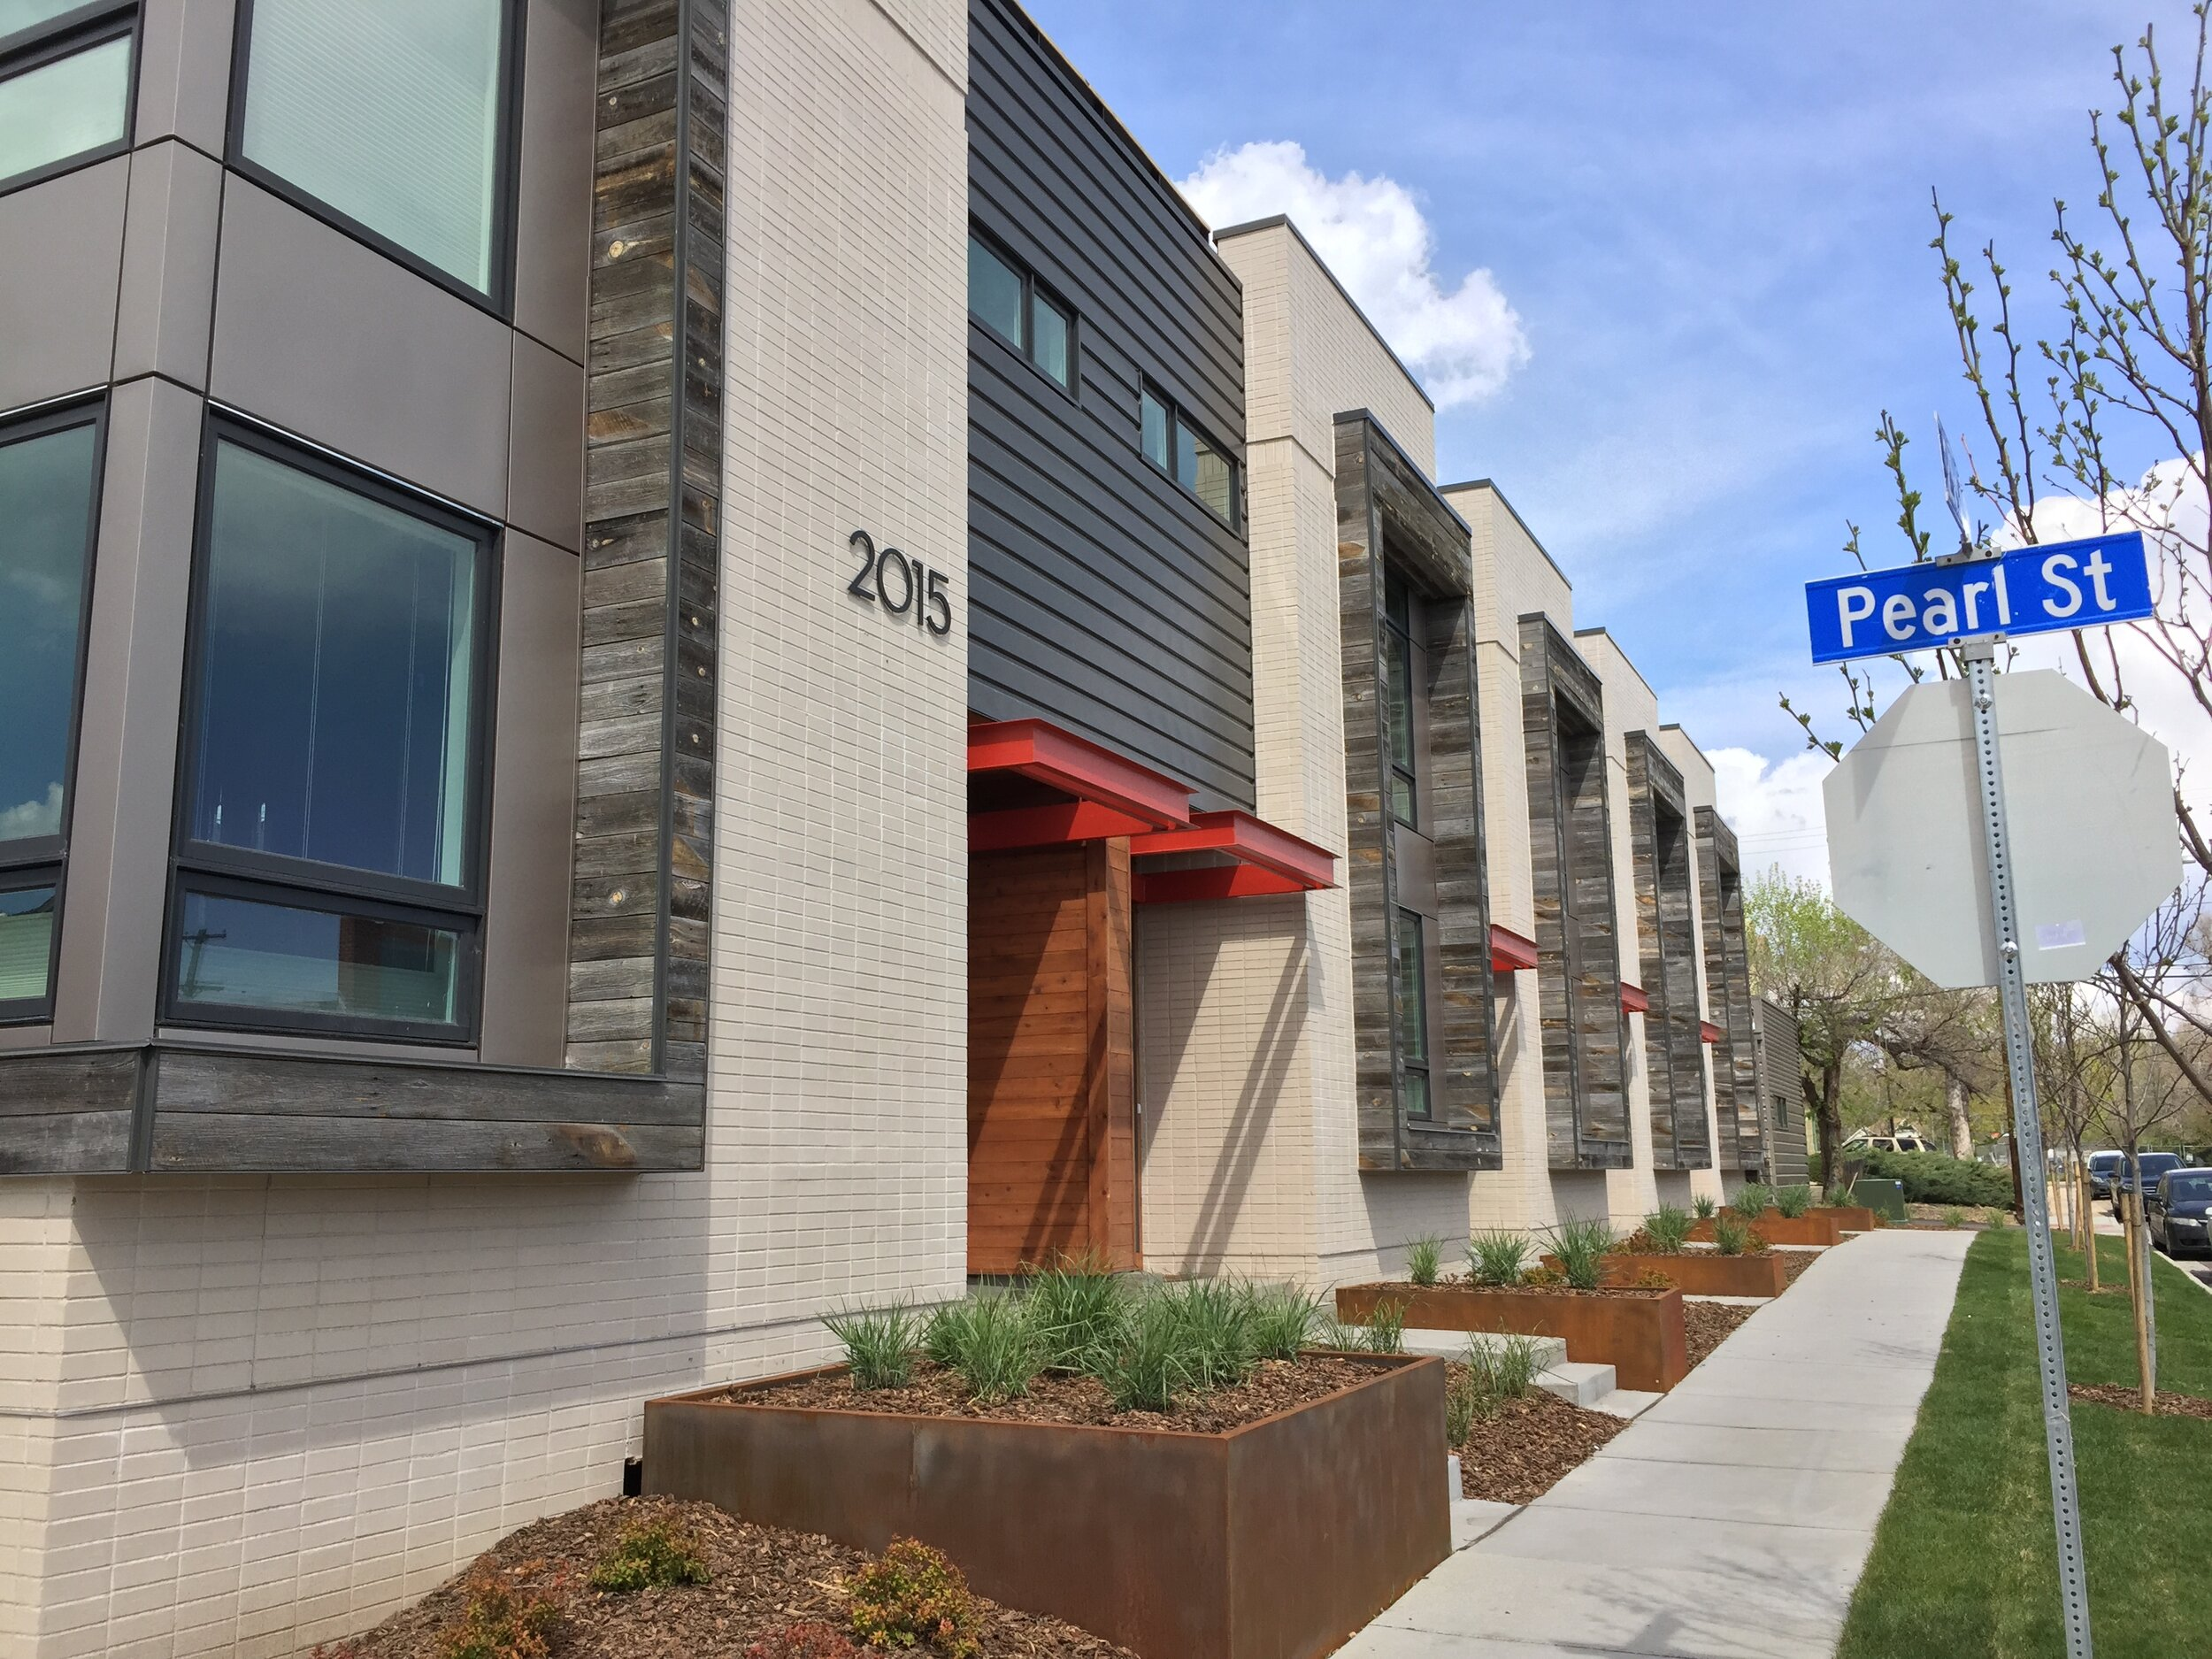 PROJECT INFORMATION - Location: Boulder, COBuilding Size: 7,000 SFConstruction Duration: 9 MonthsCompletion Date: February, 2015